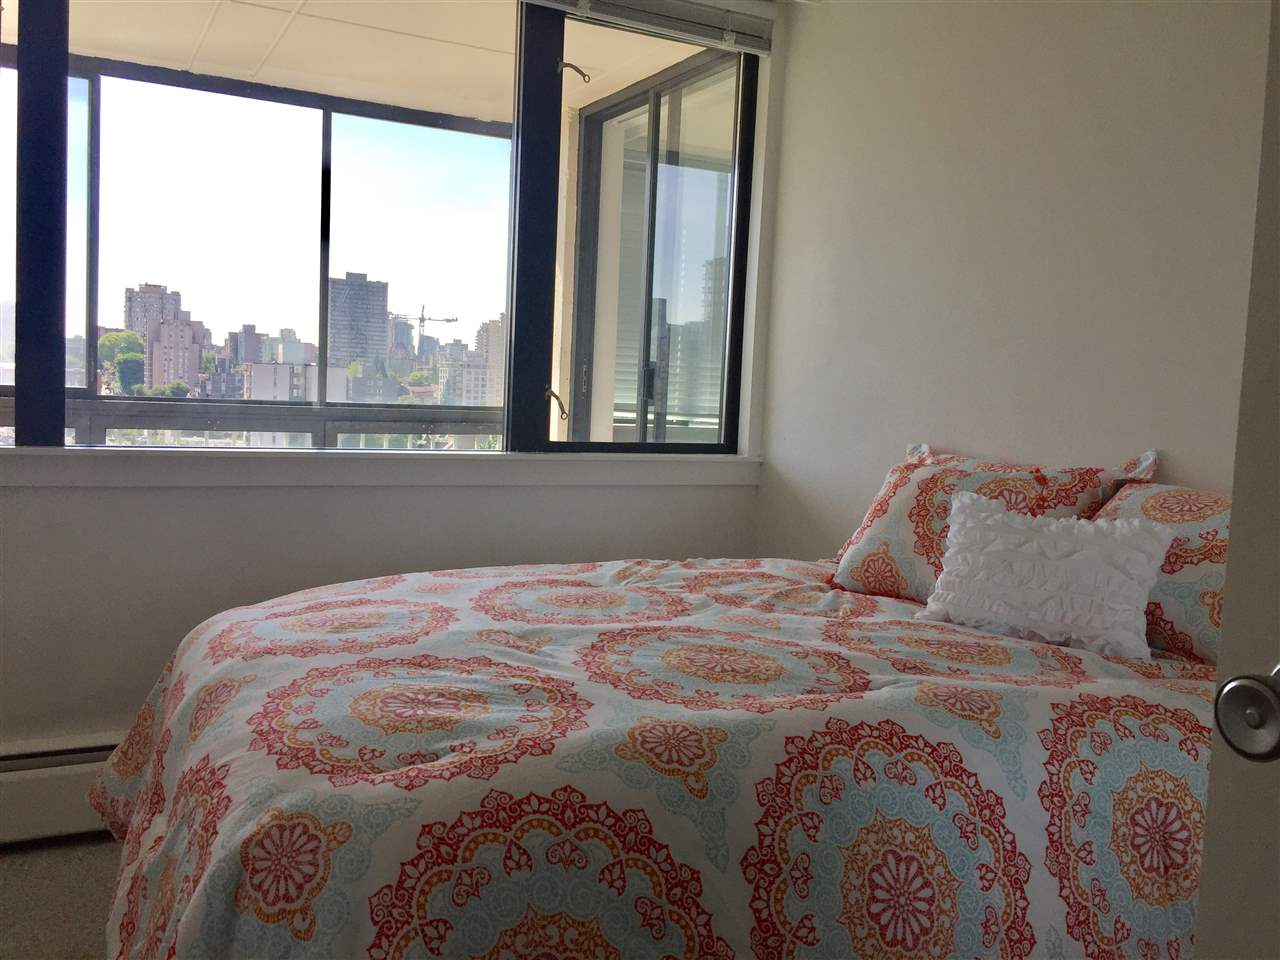 2nd bedroom with view of gardens and city